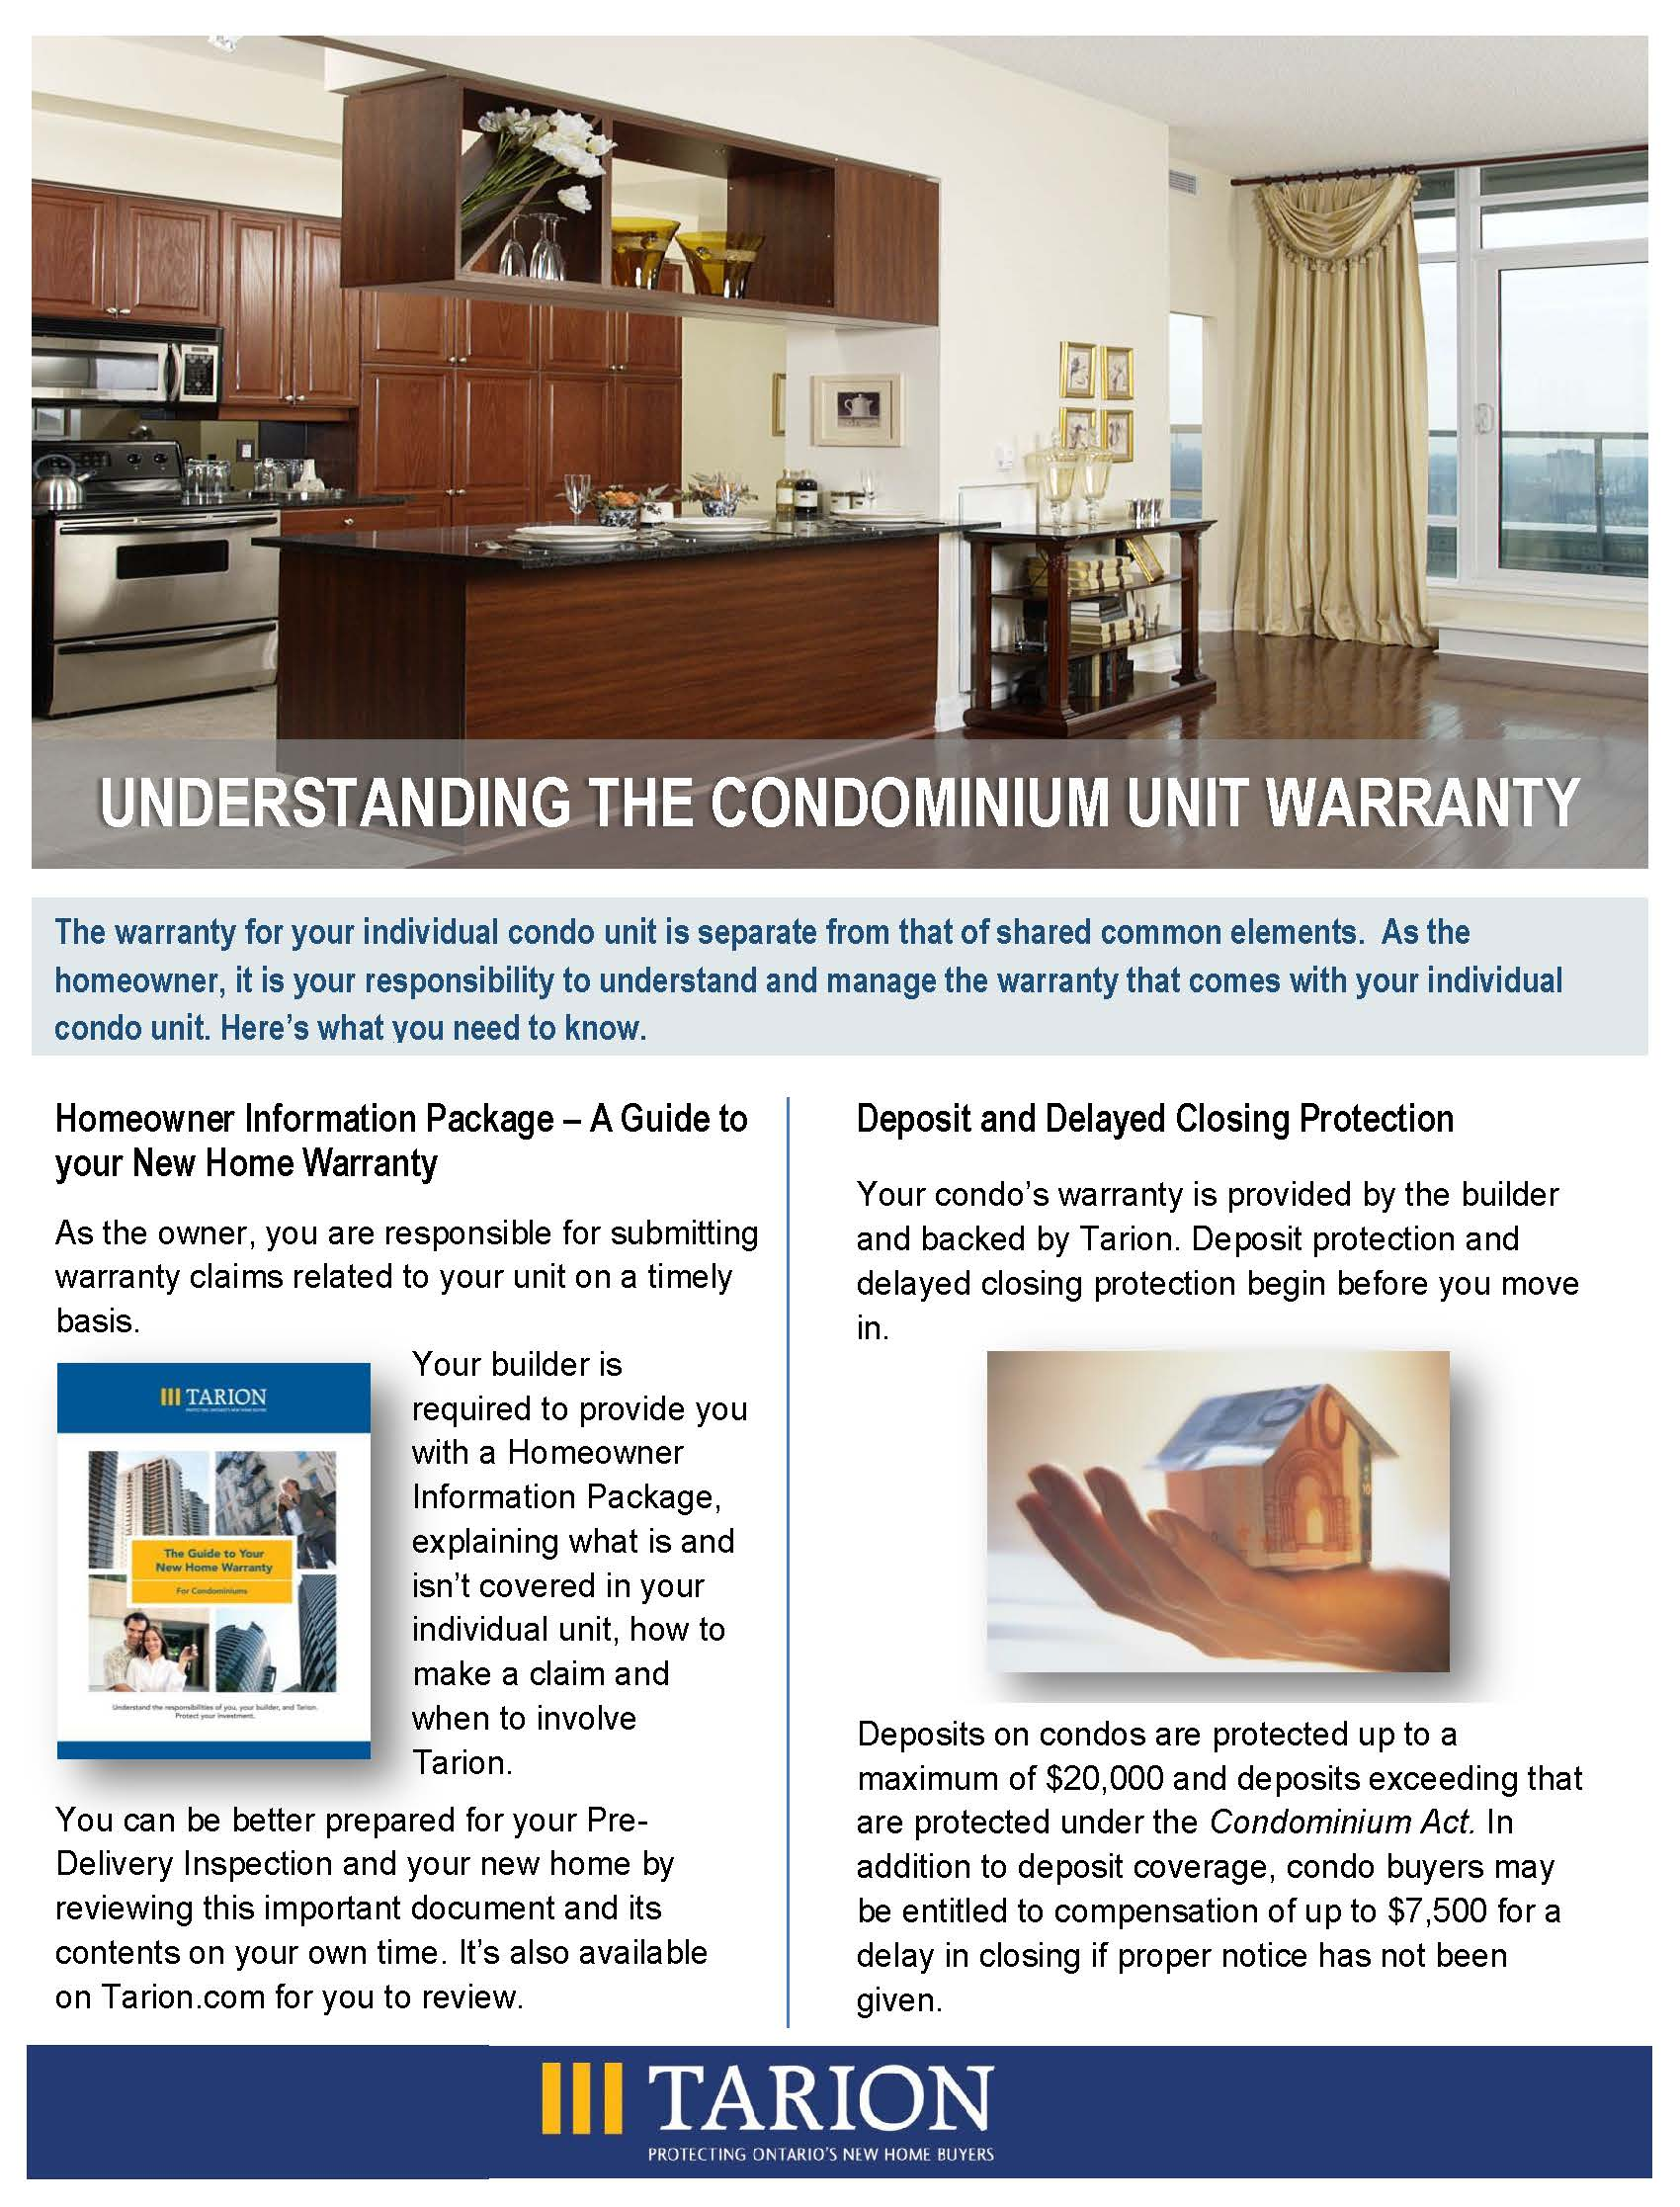 Understanding the Condominium Unit Warranty